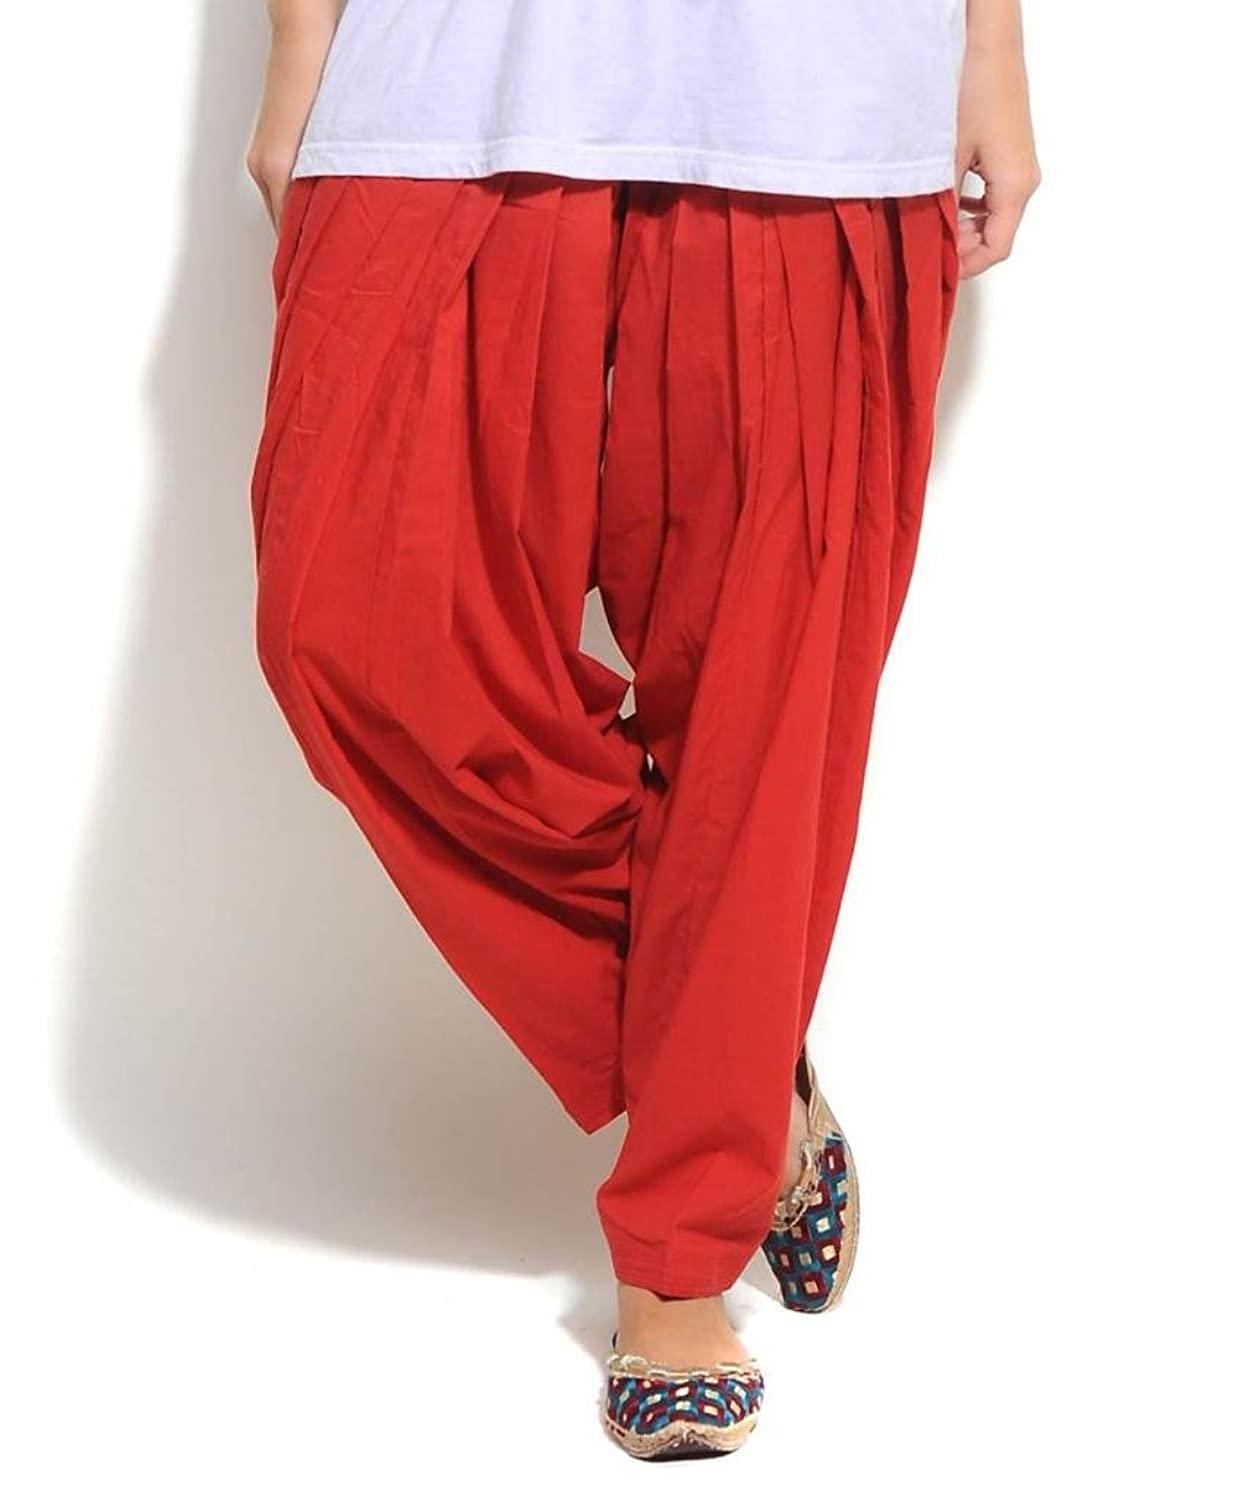 http://www.amazon.in/Magnetic-Designs-Cotton-Patiala-Salwar/dp/B00K148P5M/ref=pd_sim_sbs_a_3?ie=UTF8&refRID=0N3E0TC8VS51W2EGXVWP